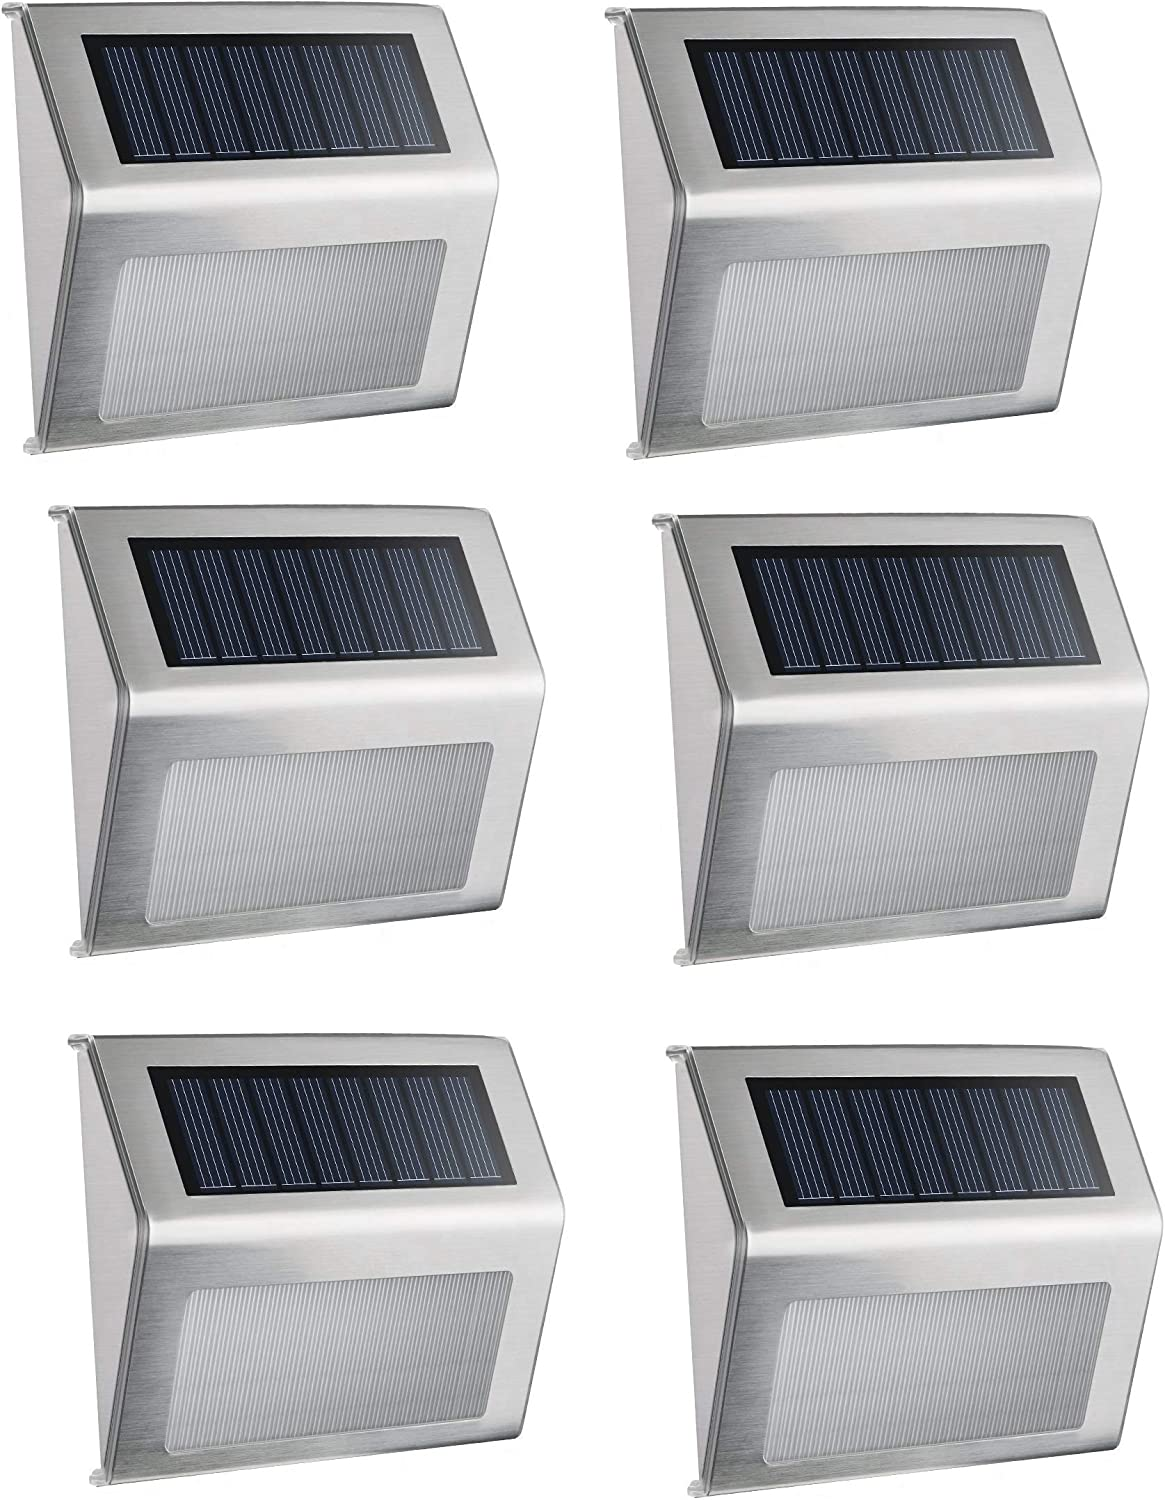 Solar Floor Wall Lights, (6 Pack) Elelink Waterproof Stainless Steel LED Solar Powered Lamp Outdoor Lighting for Step Path Patio Deck Garden Fence Post